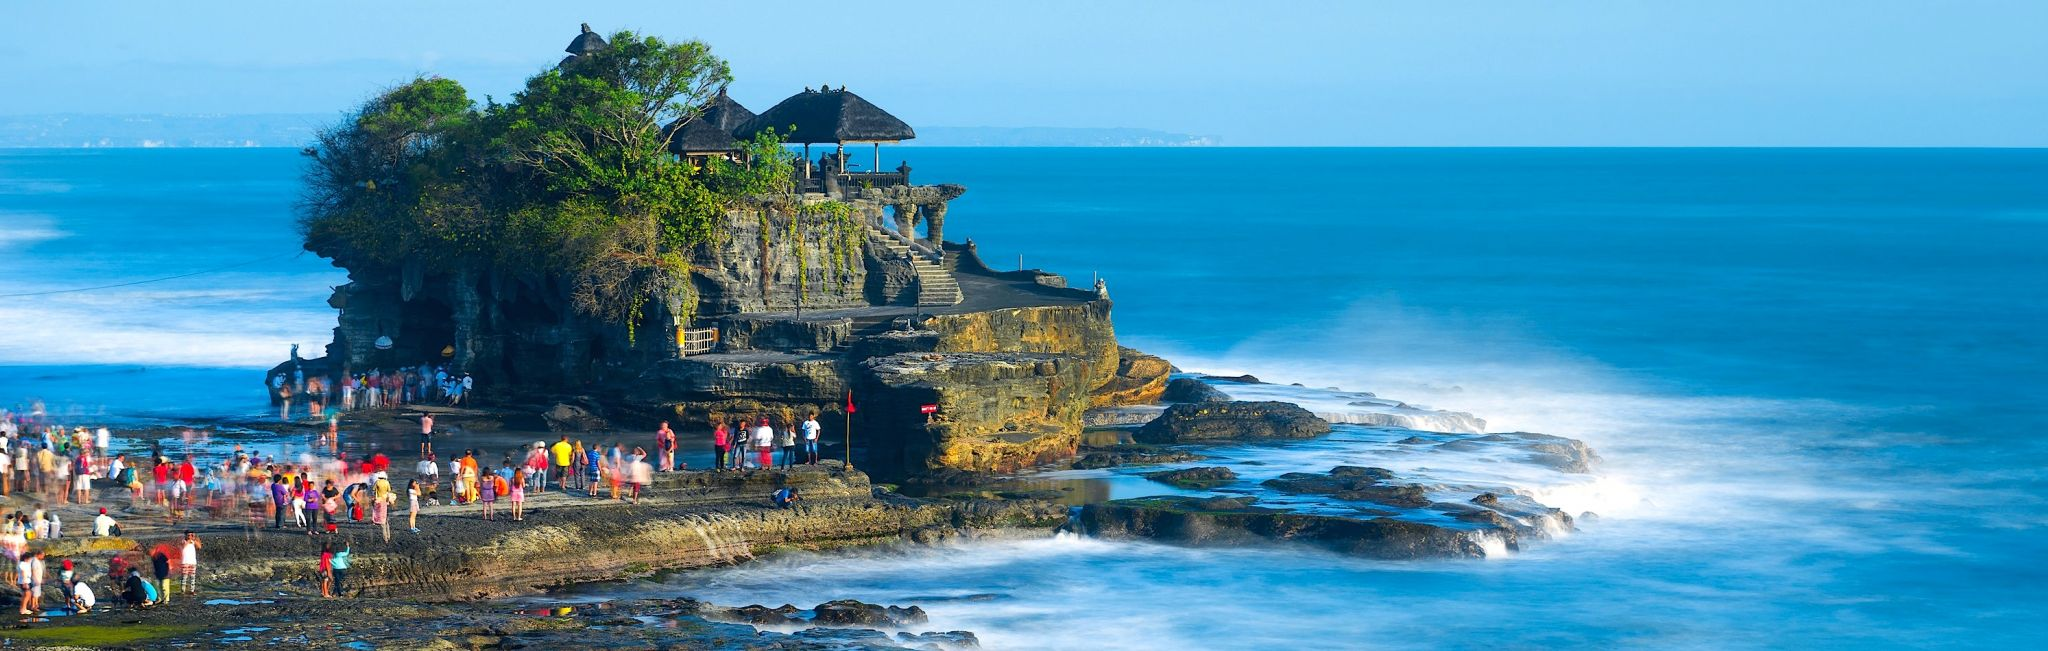 Bali Vacation Packages 2016-2017 | Bali Tours & Vacations ...